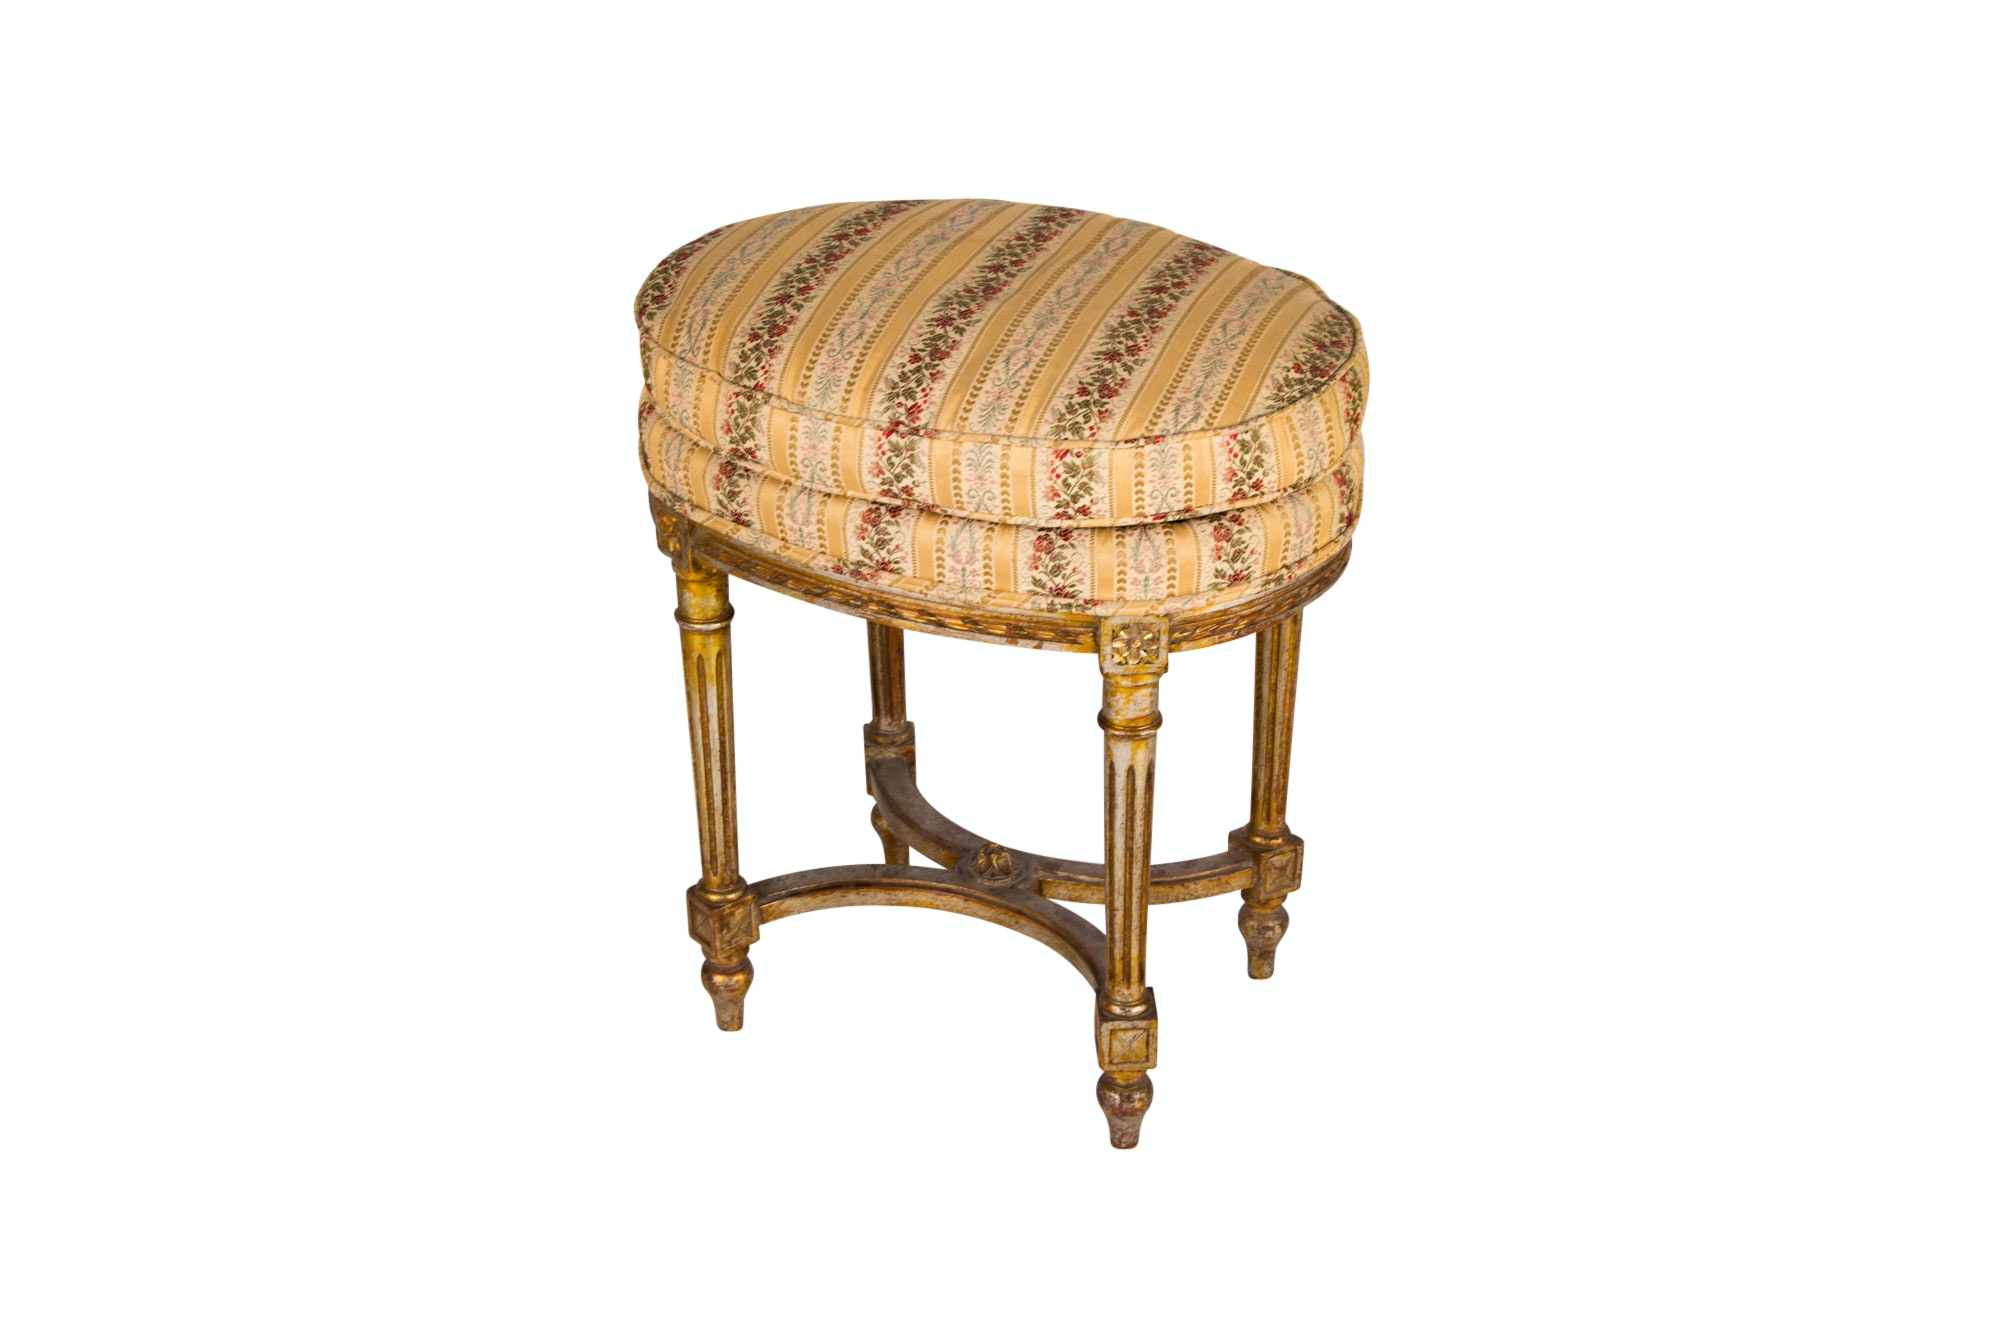 Louis XVI Style Giltwood Stool by Loehr Decorators, Early 20th Century